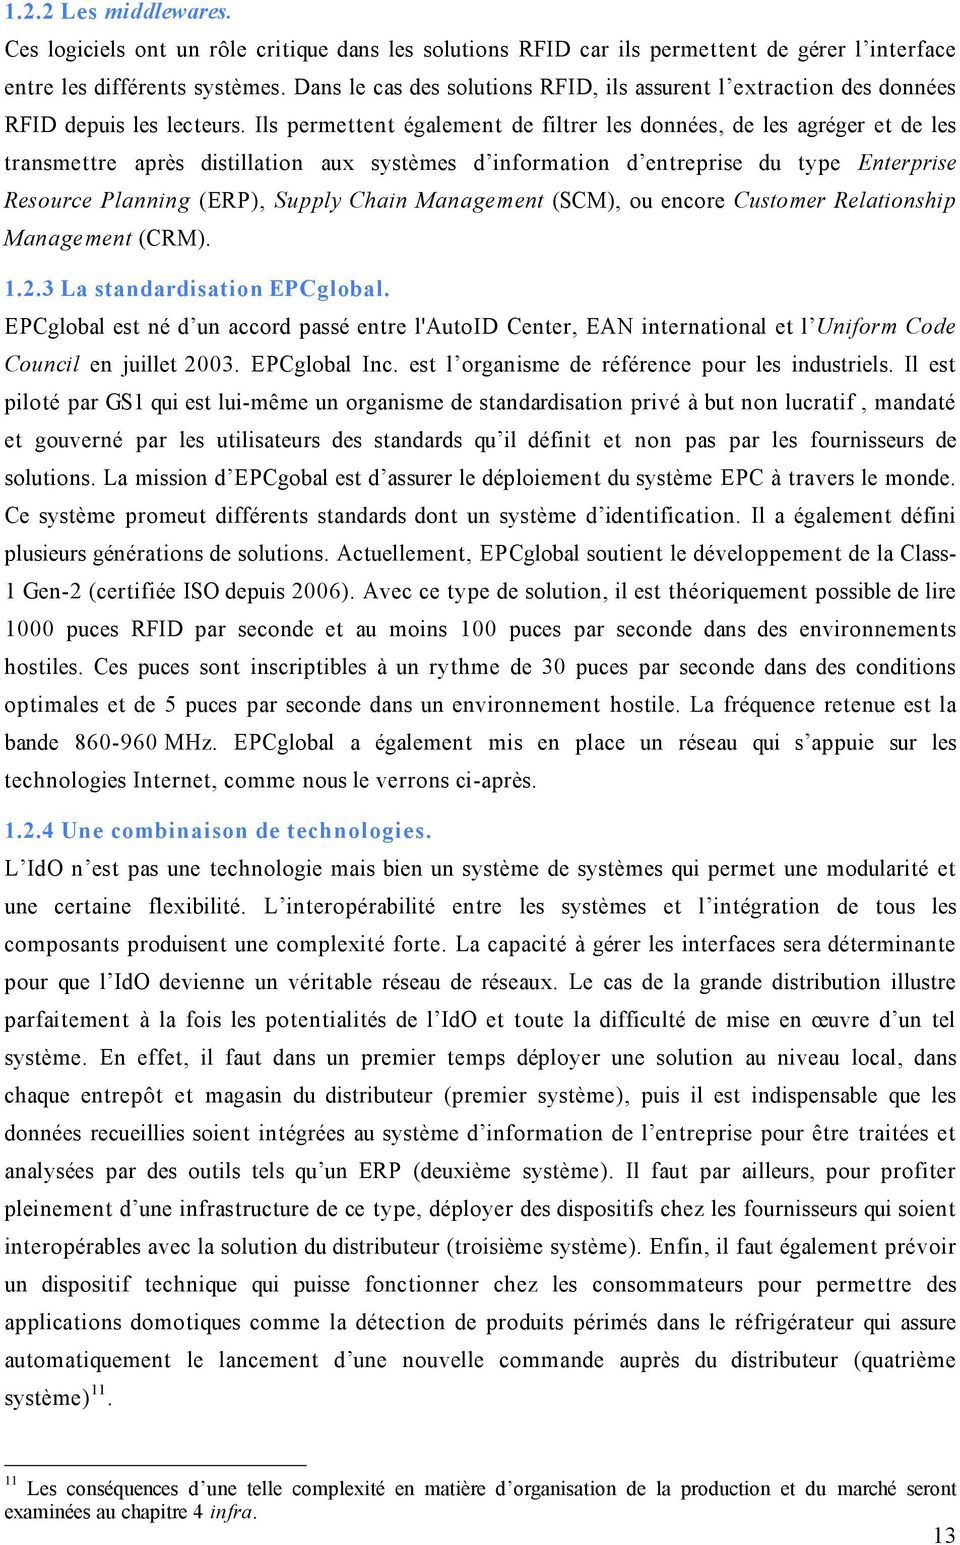 Ils permettent également de filtrer les données, de les agréger et de les transmettre après distillation aux systèmes d information d entreprise du type Enterprise Resource Planning (ERP), Supply